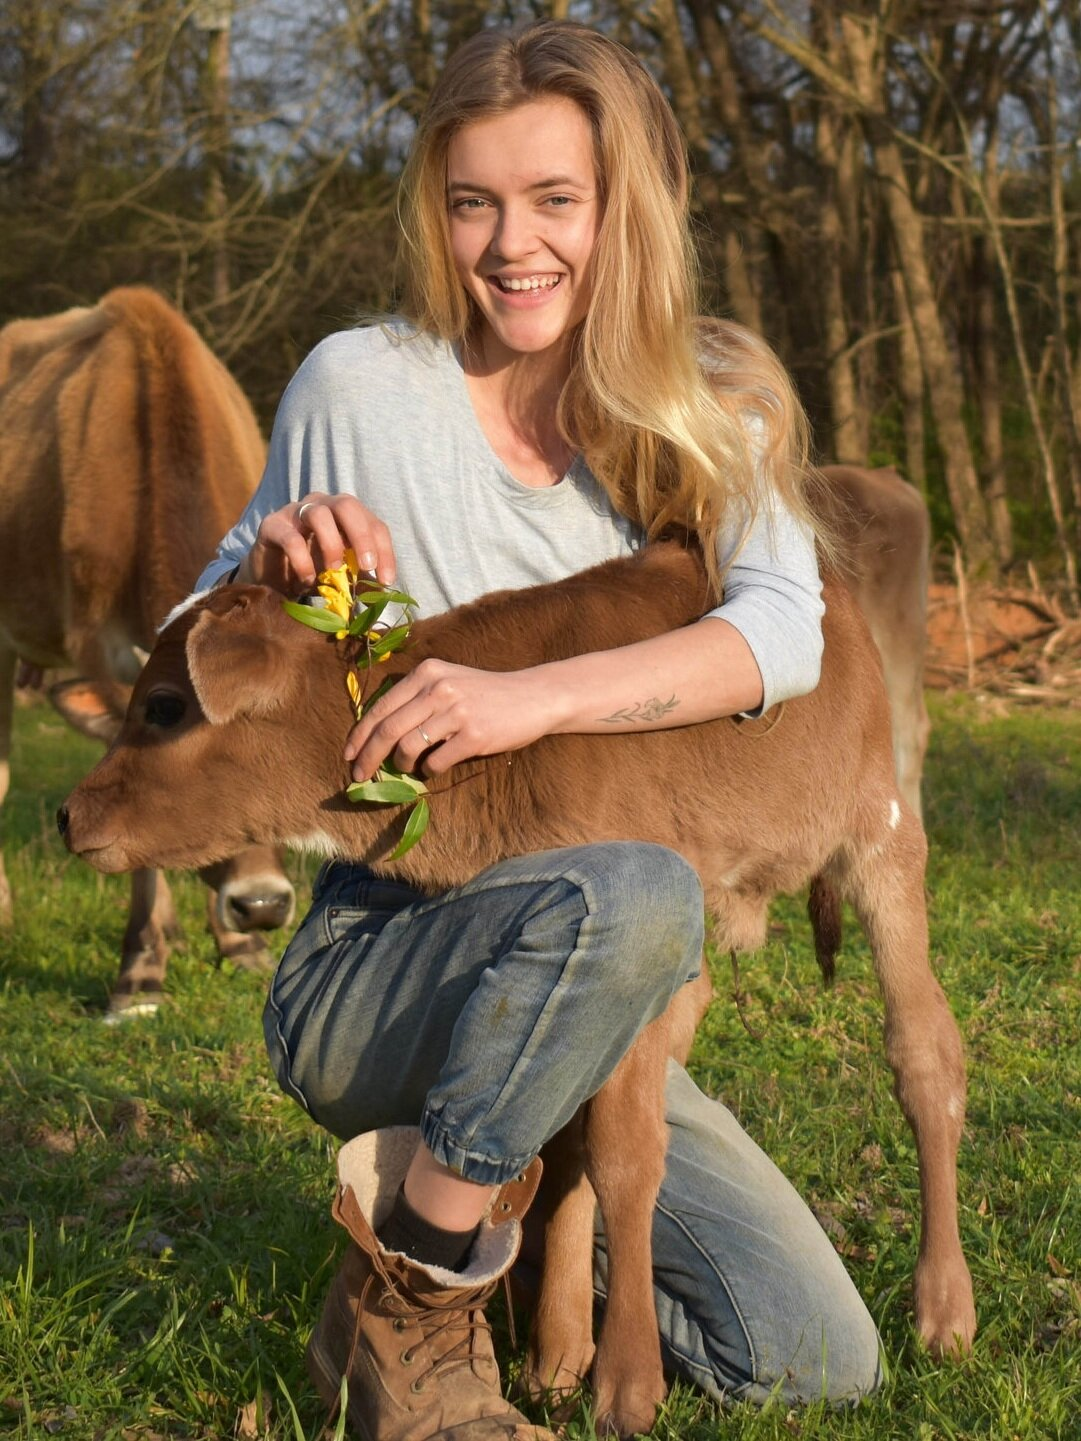 Annemarie checks on a new baby from one of her Jersey cows, known for their delicious milk (used for her personal use).